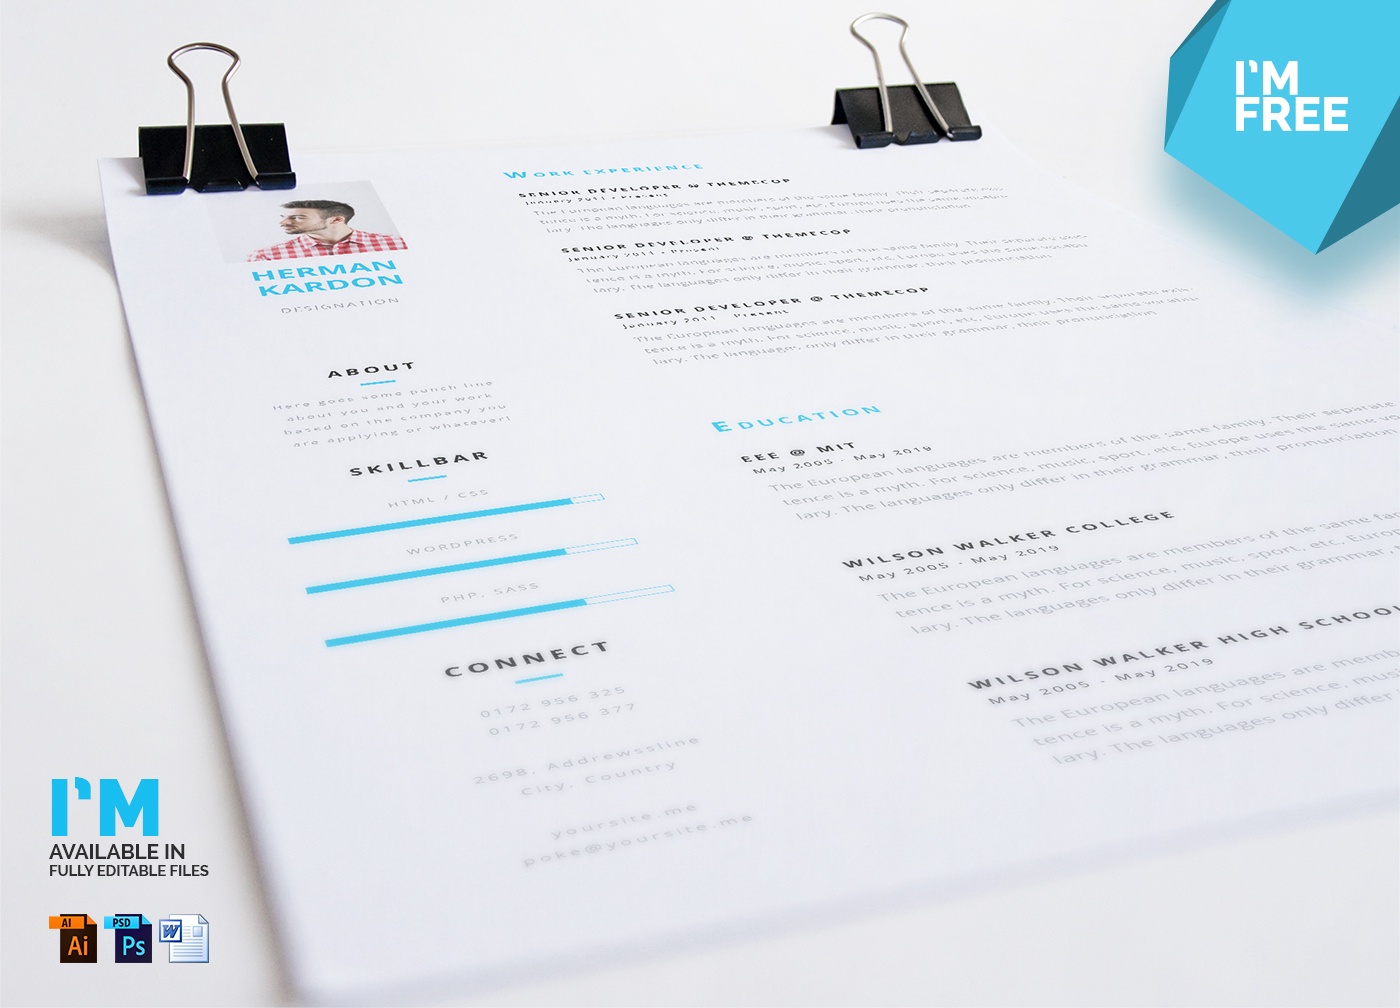 resume cv in photoshop illustrator ms word on behance thinking just for a paper copy of cv resume that s gross time for your own online resume so that you can show yourself off in the smartest way